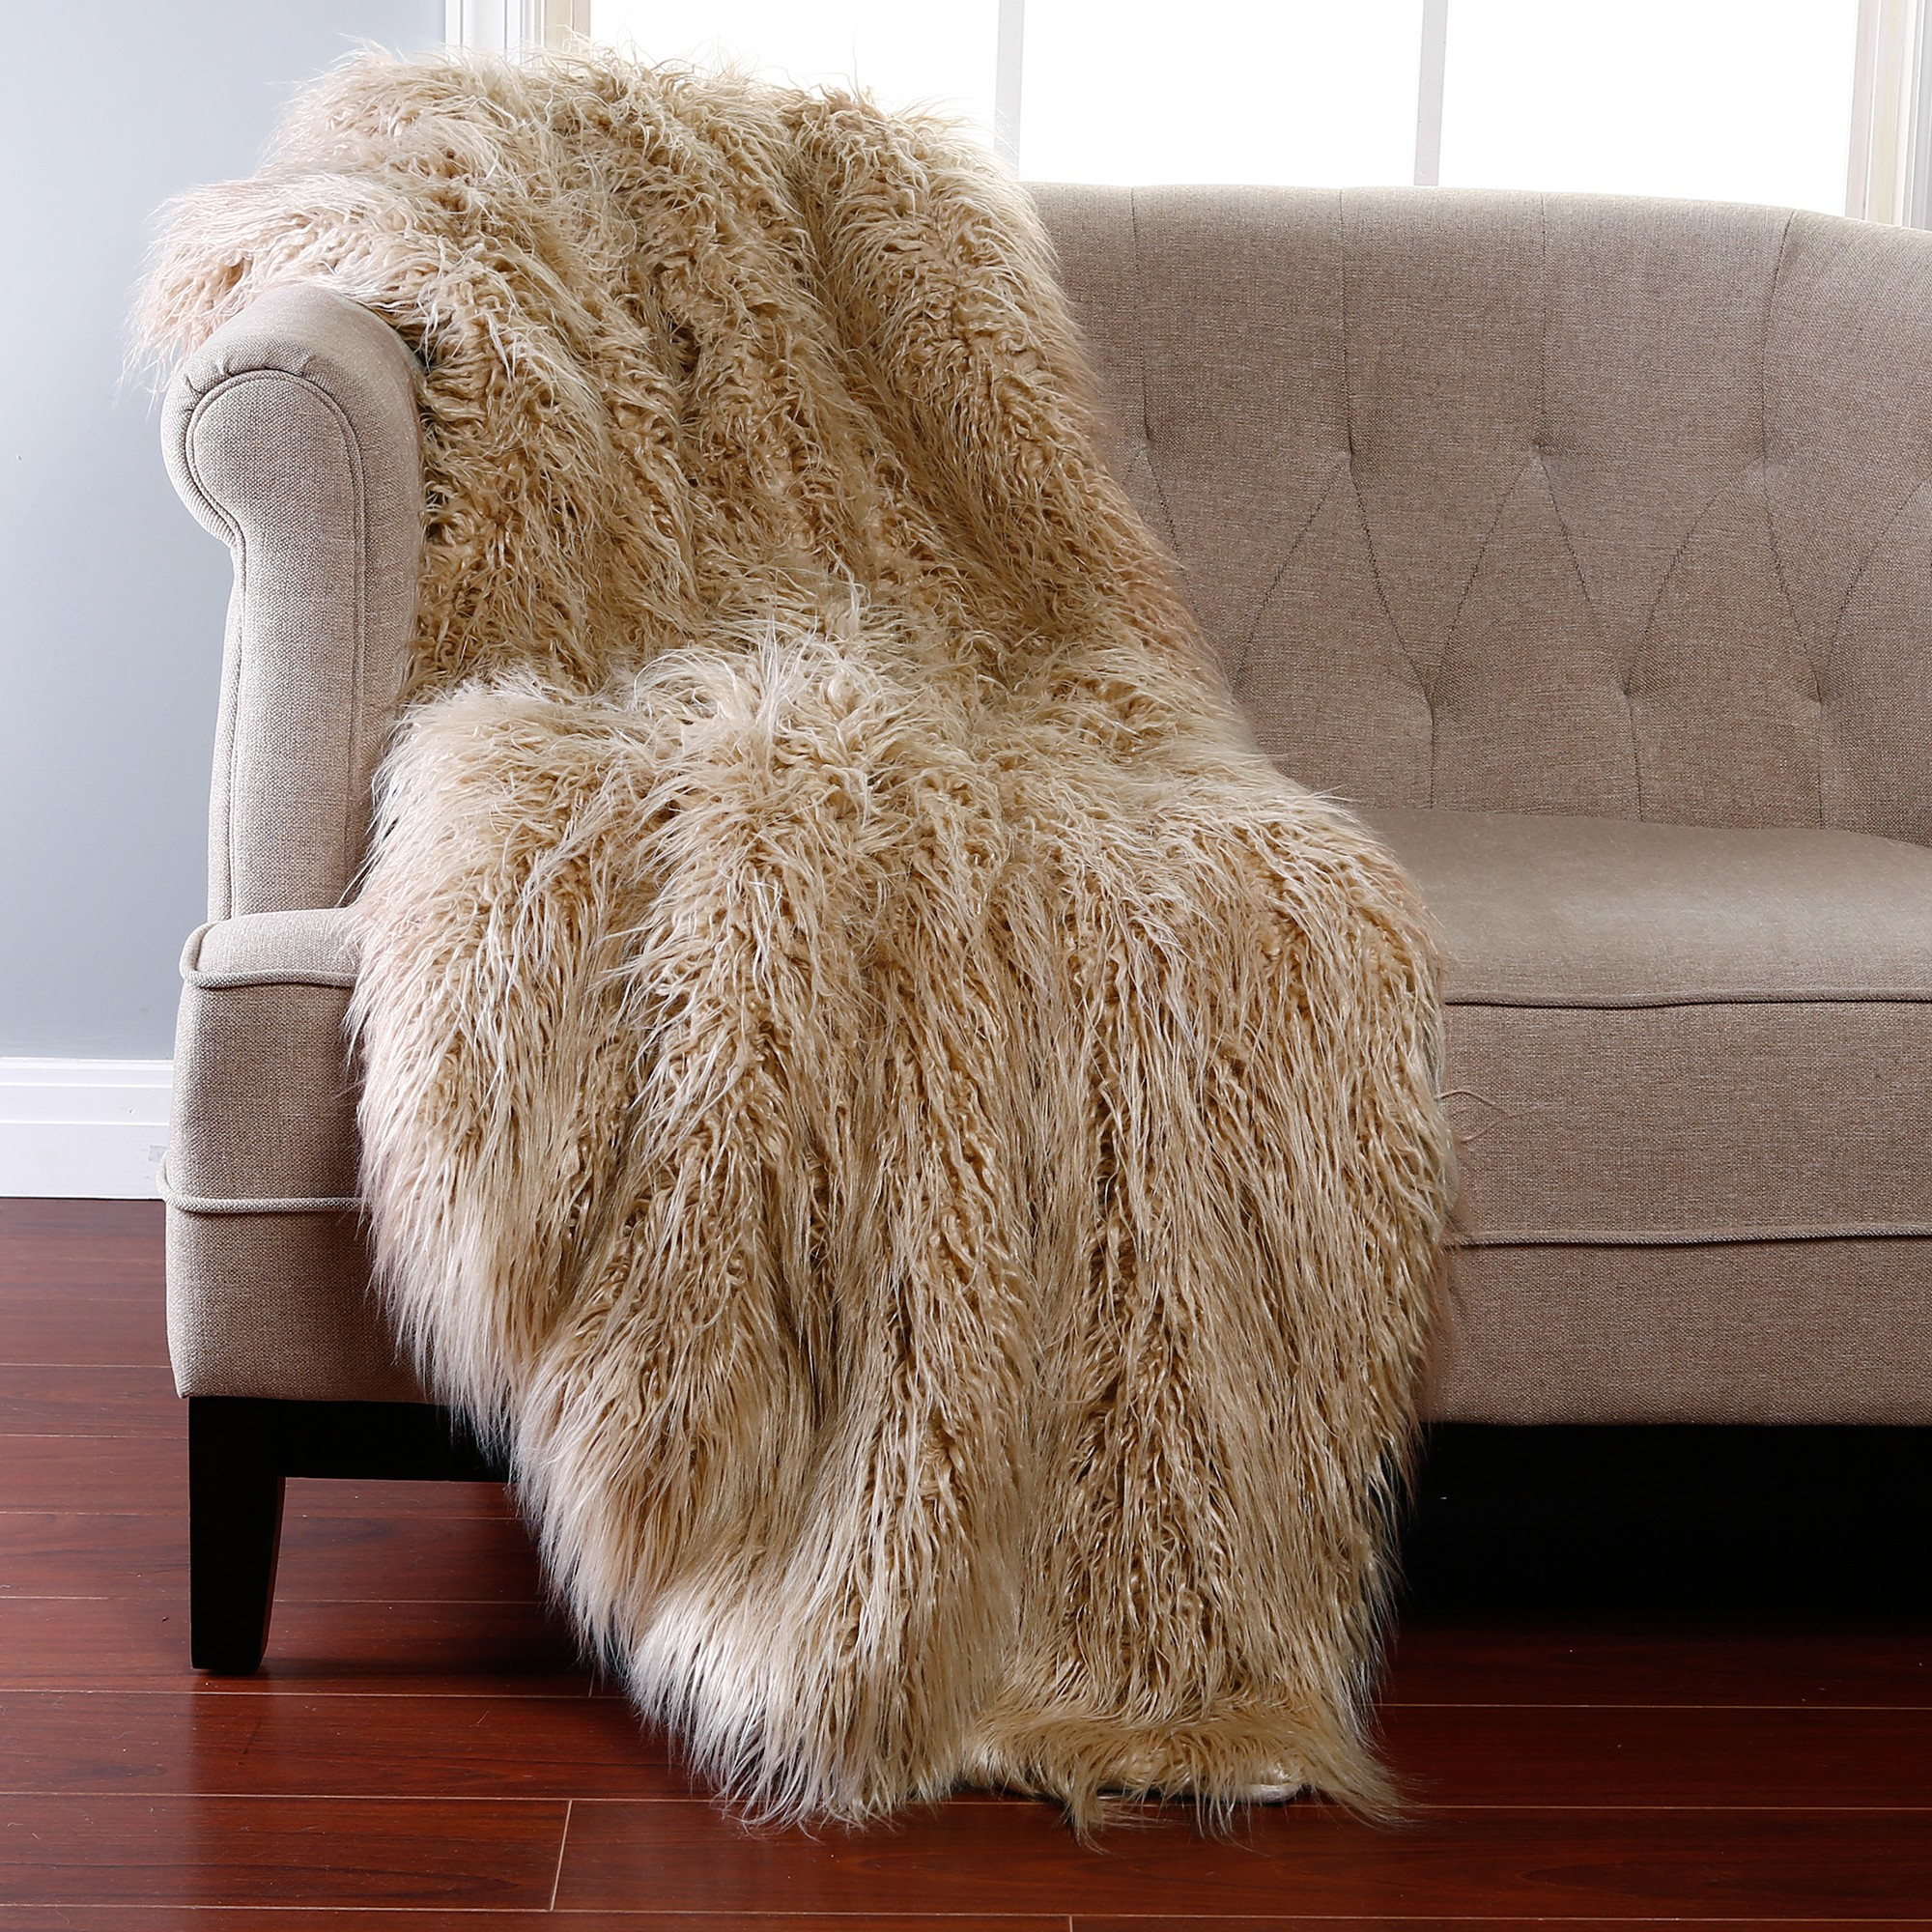 Faux fur sofa throw best 25 sofa throw ideas on pinterest pillows couch grey thesofa Throw blankets for sofa